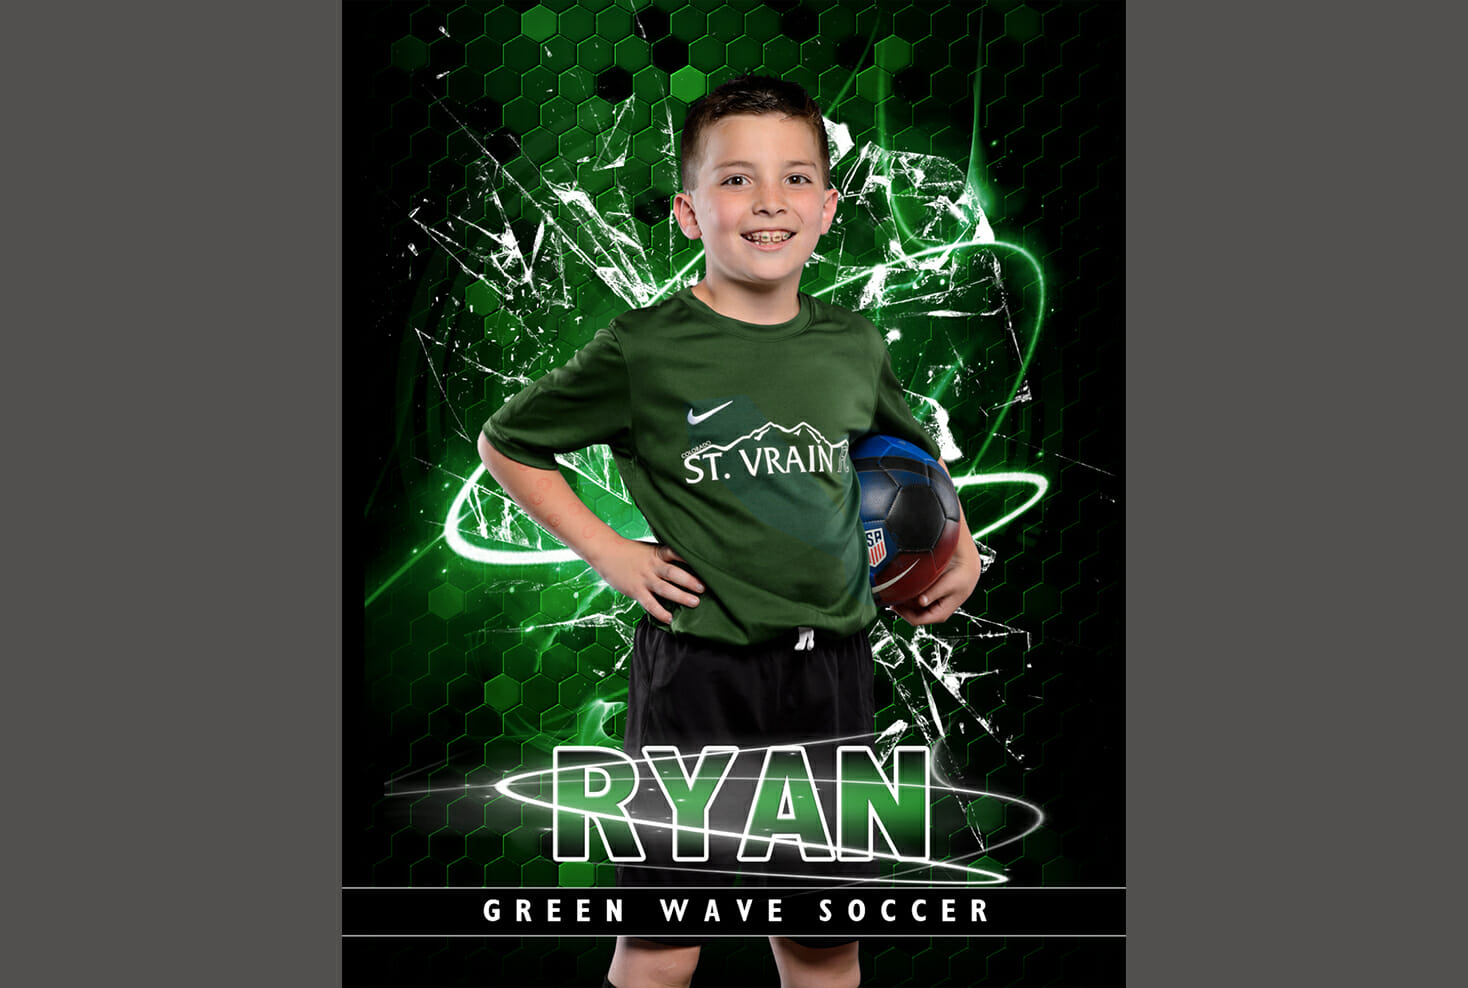 St Vrain youth soccer individual photo